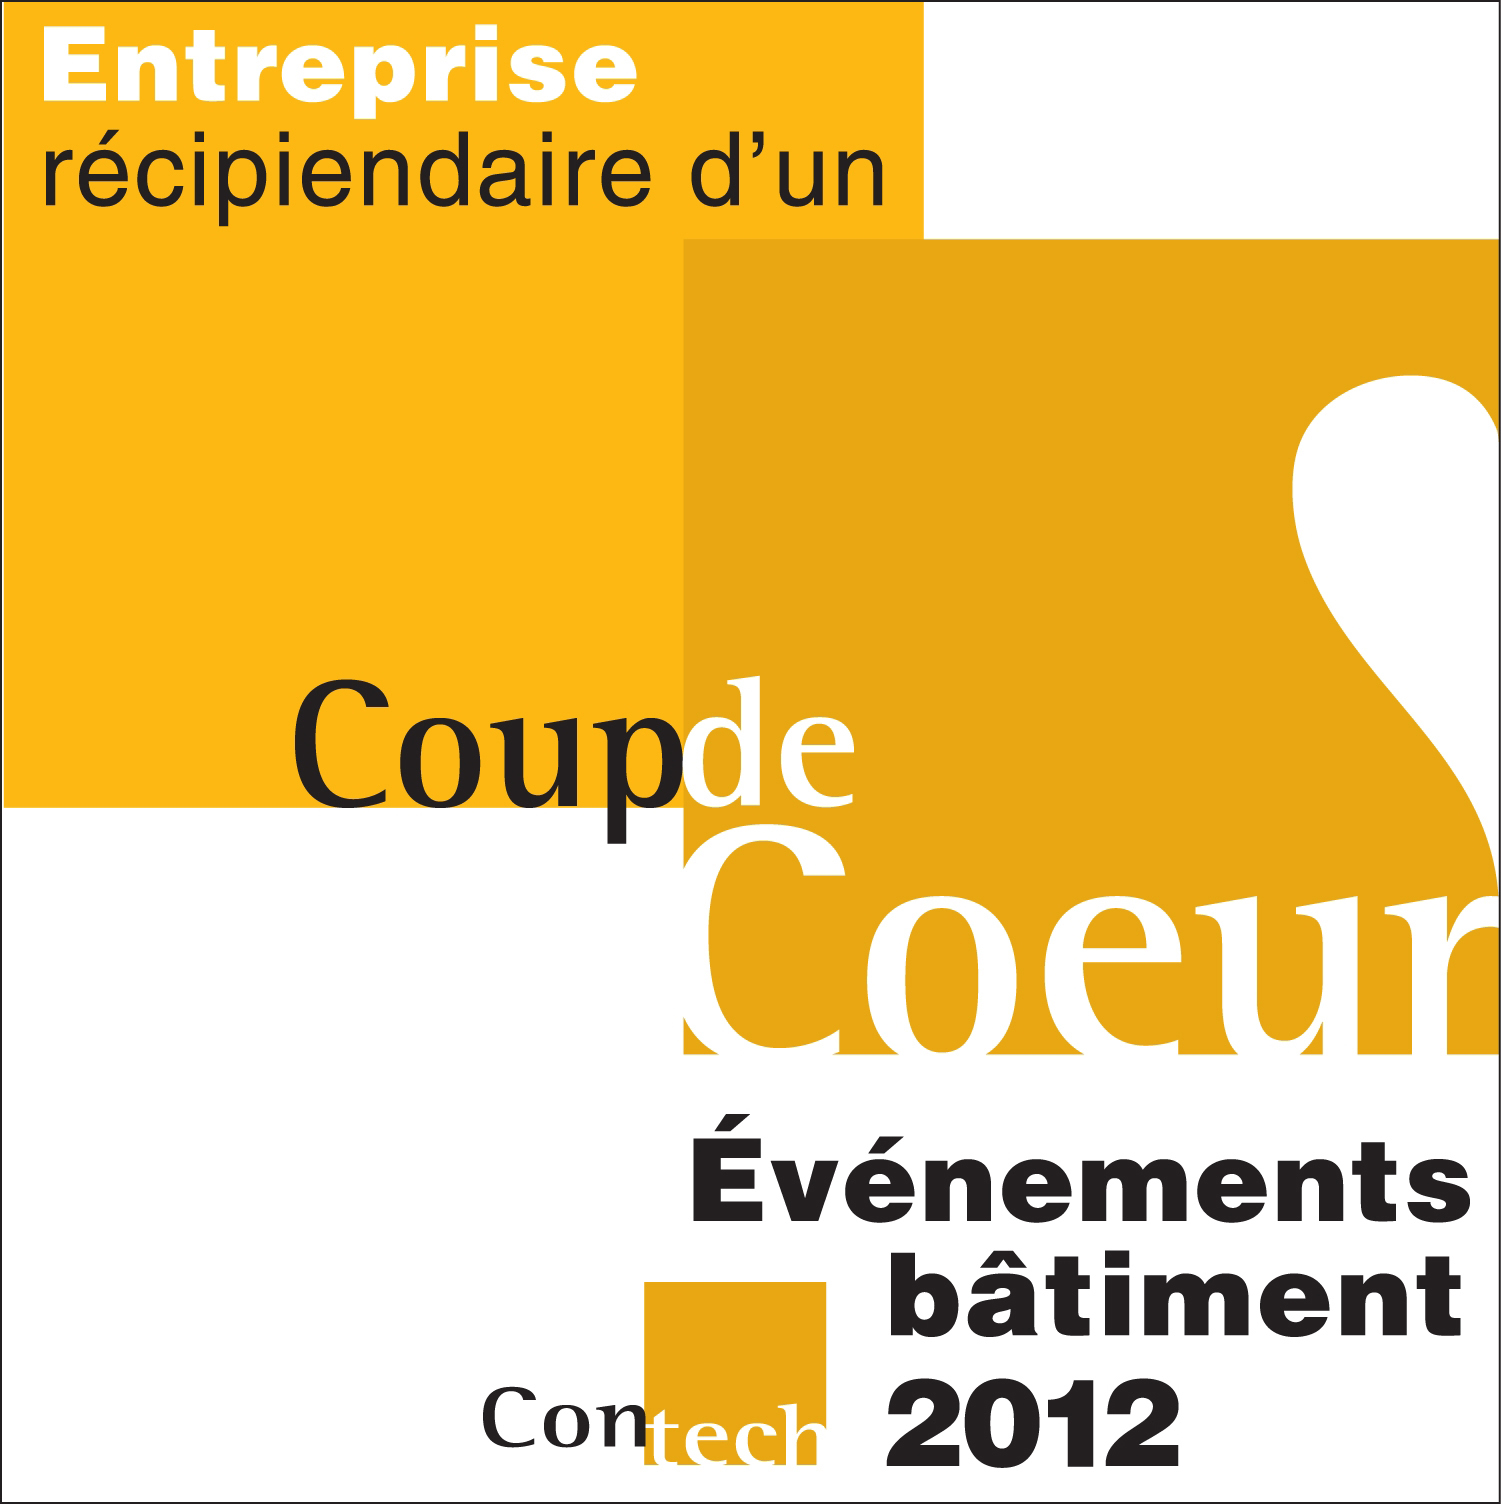 Winner of the montreal coups de coeur prize of 2012 - Coup de coeur in english ...